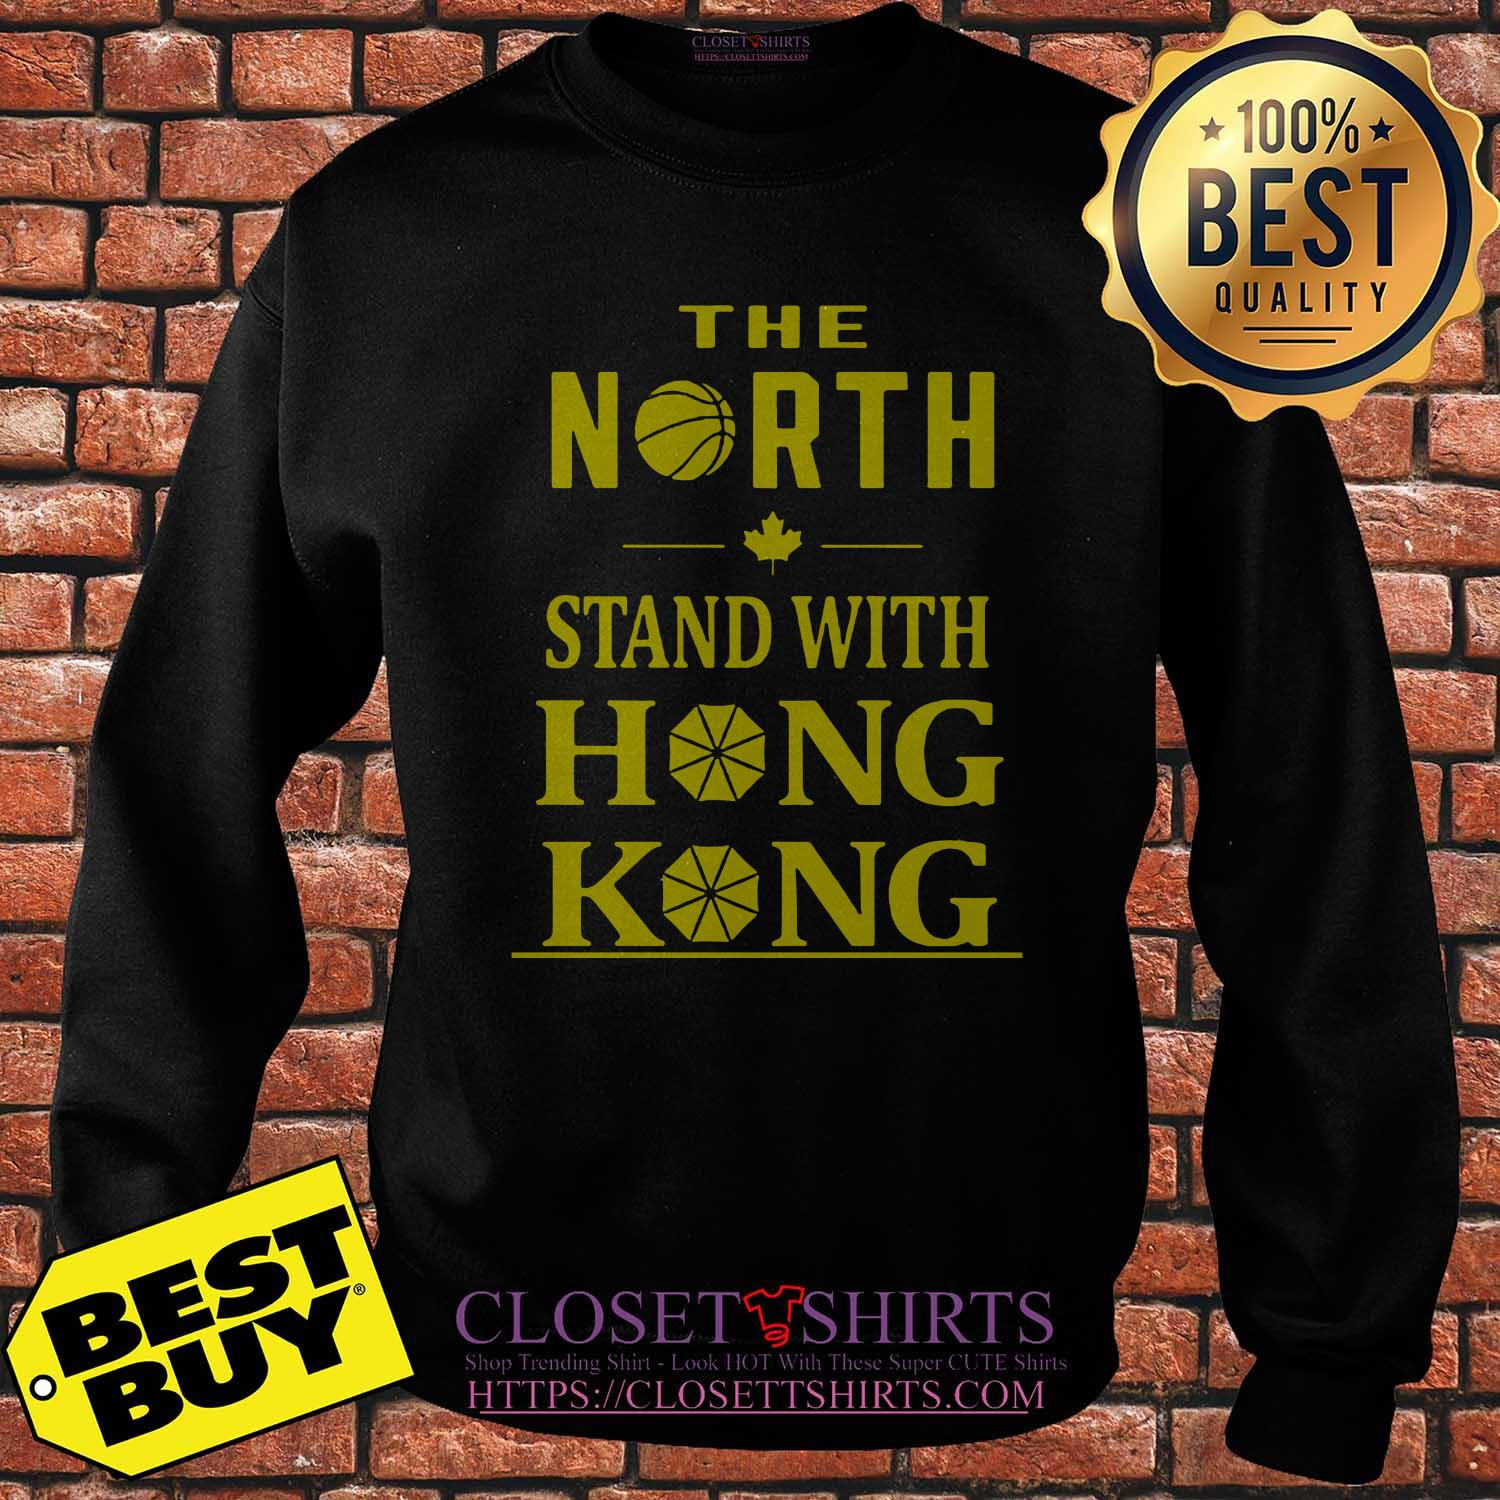 The North Stand With Hong Kong Sweatshirt